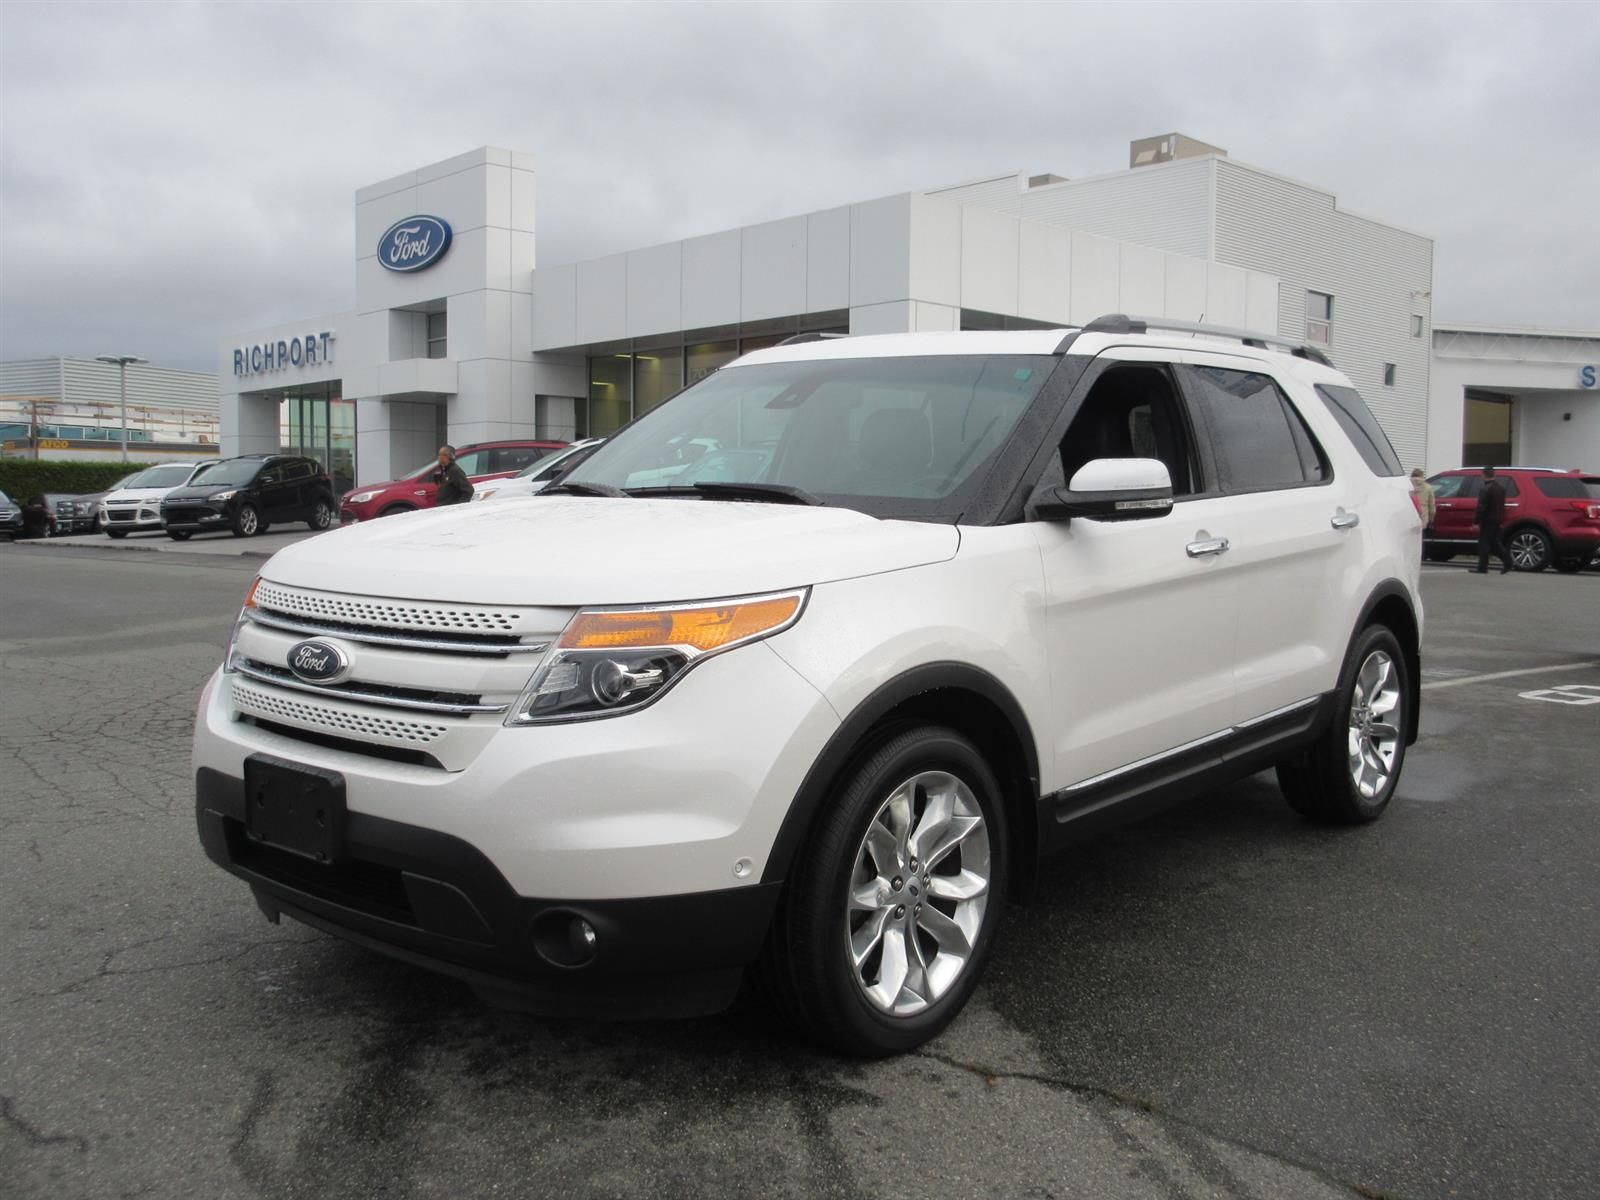 used 2014 ford explorer limited in richmond used inventory. Cars Review. Best American Auto & Cars Review